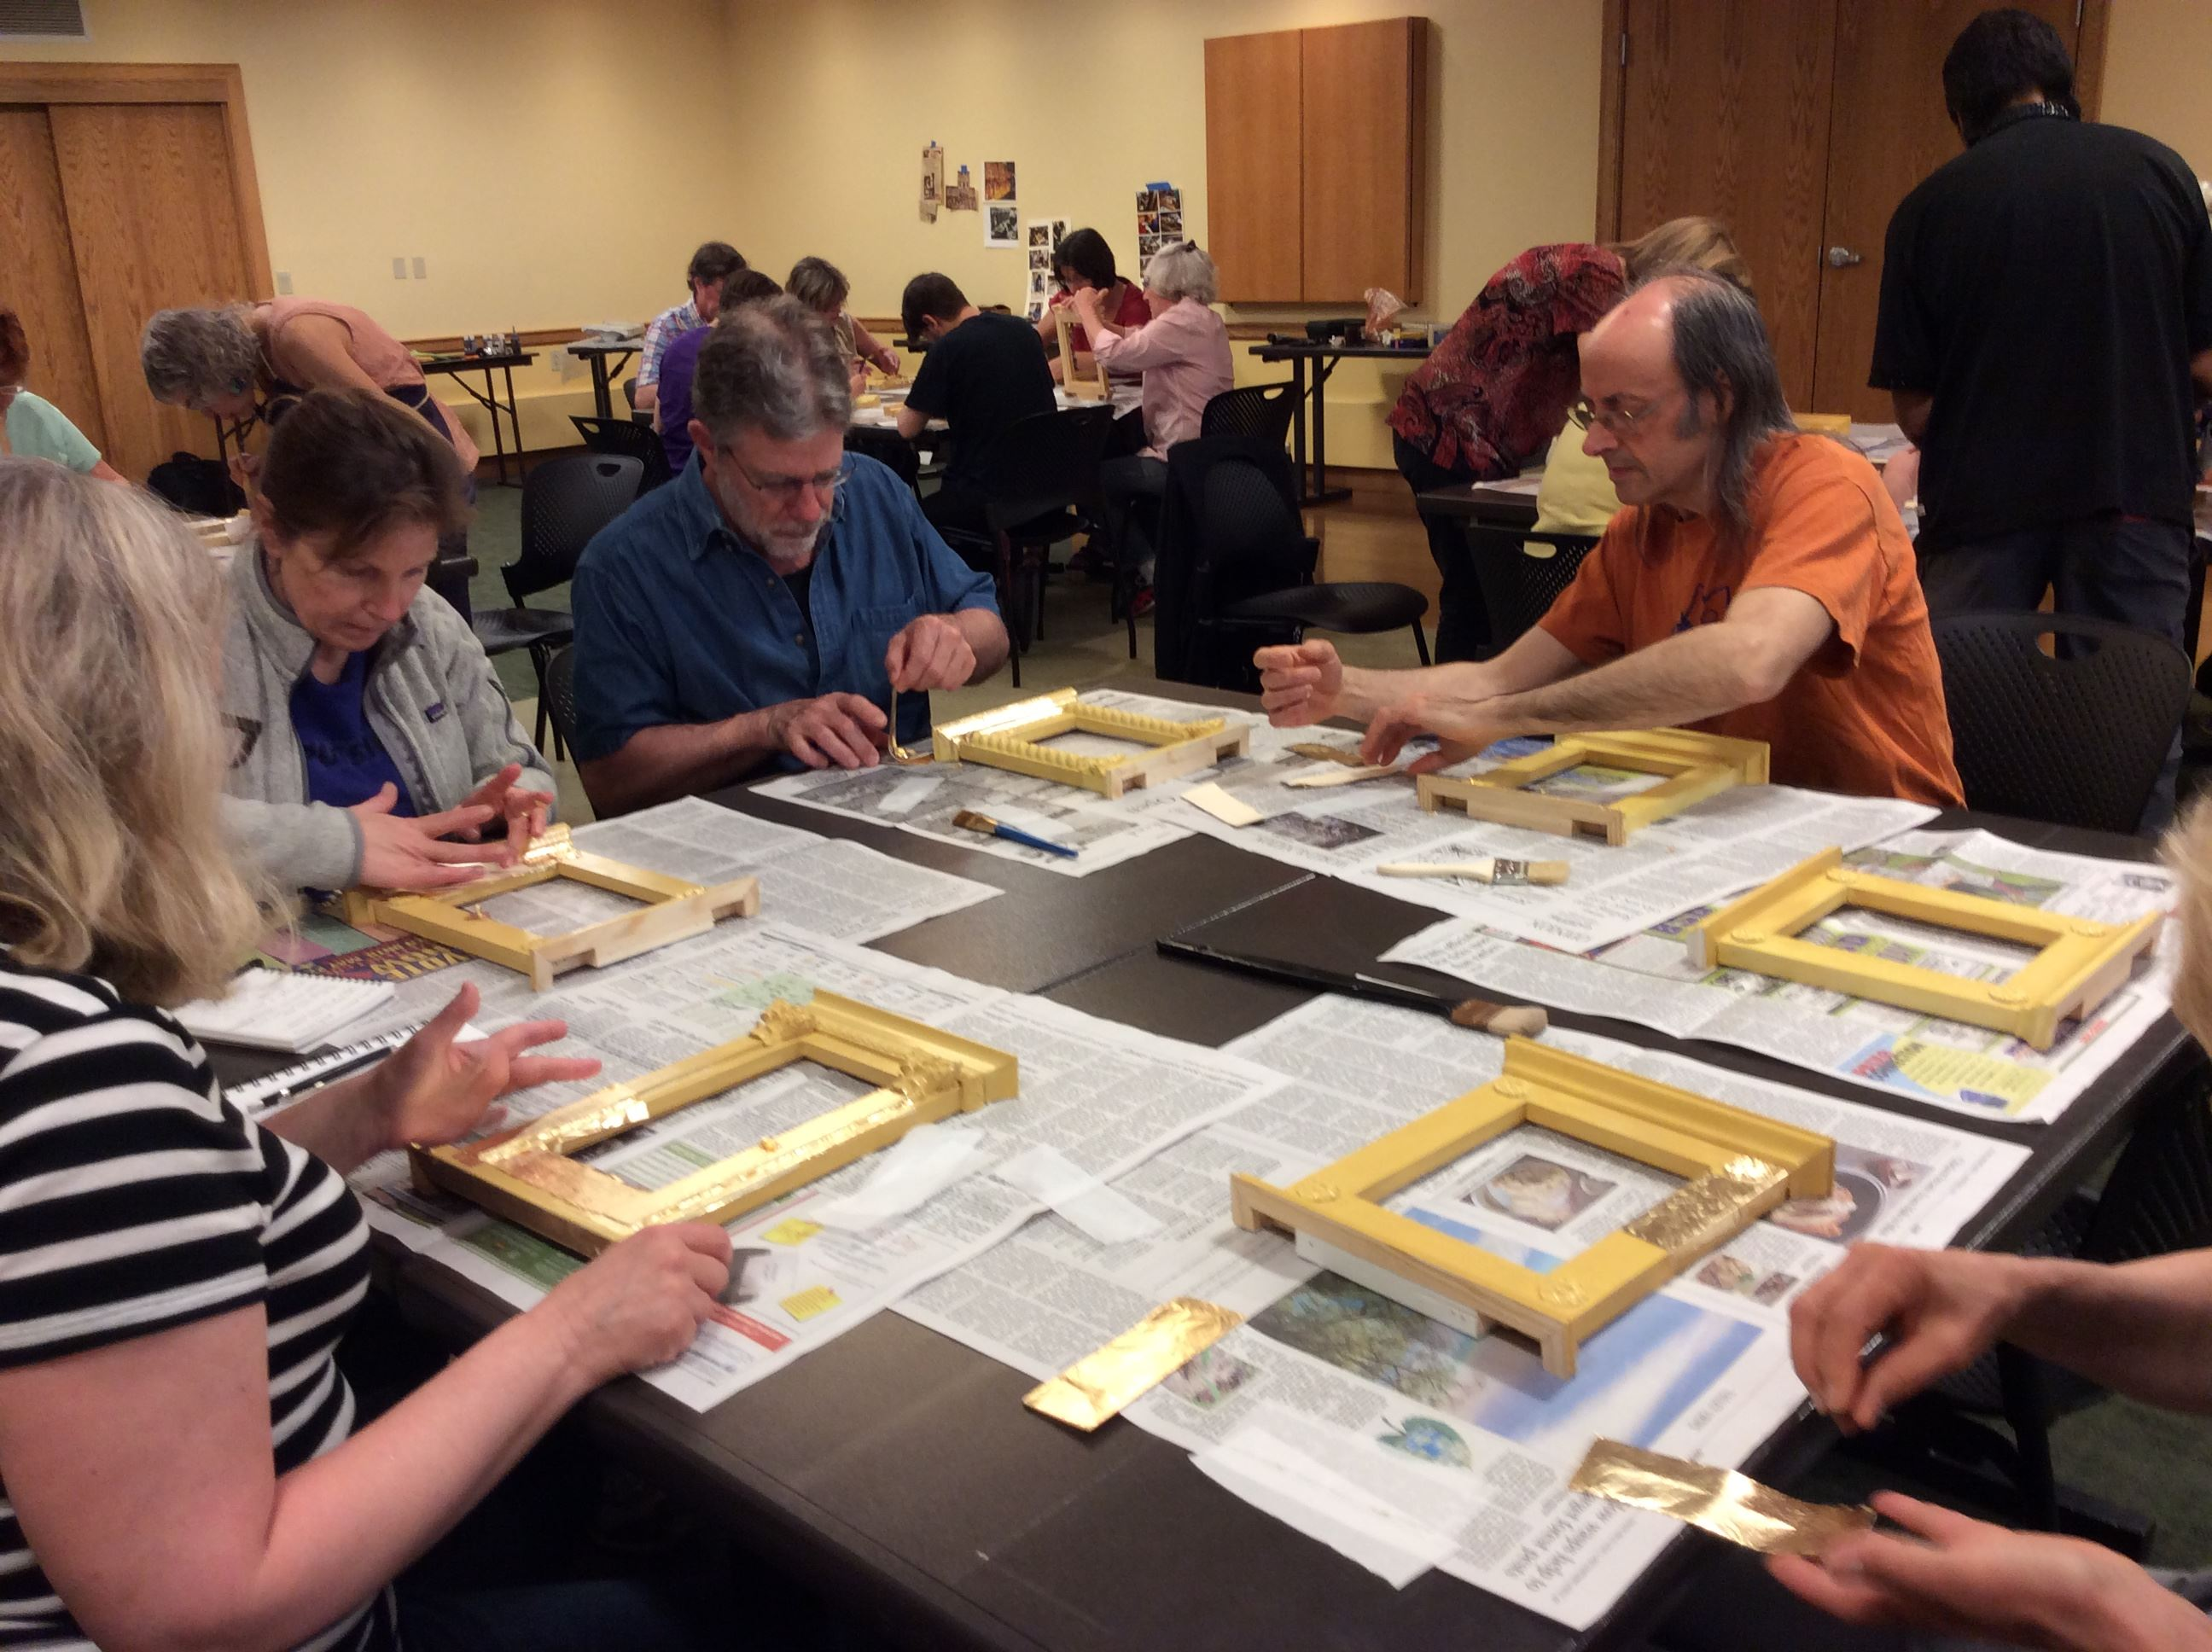 Participants gilding at the frame workshop